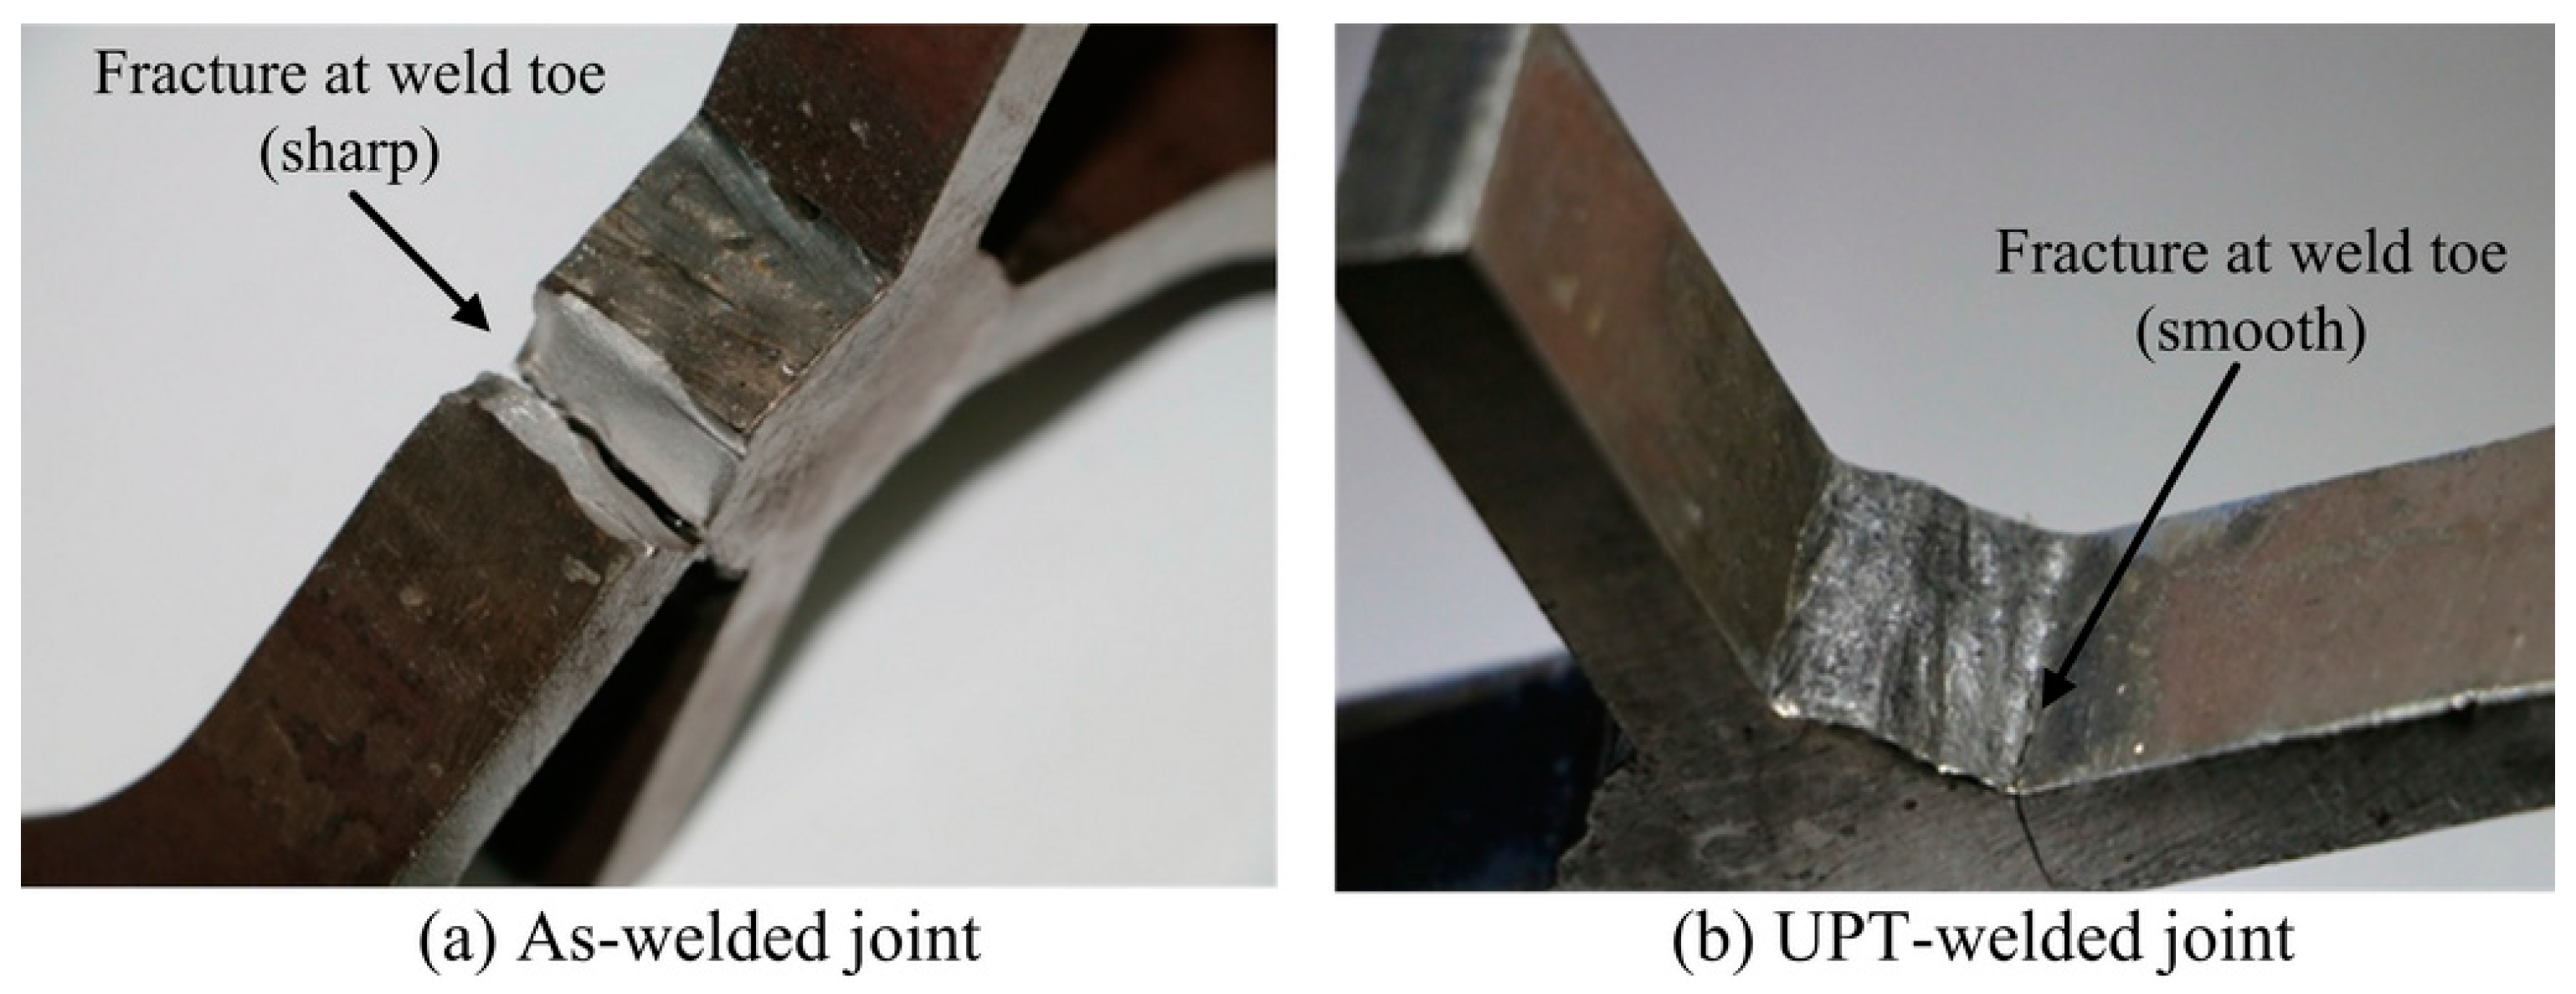 Materials   Free Full-Text   The Effect of Ultrasonic ...